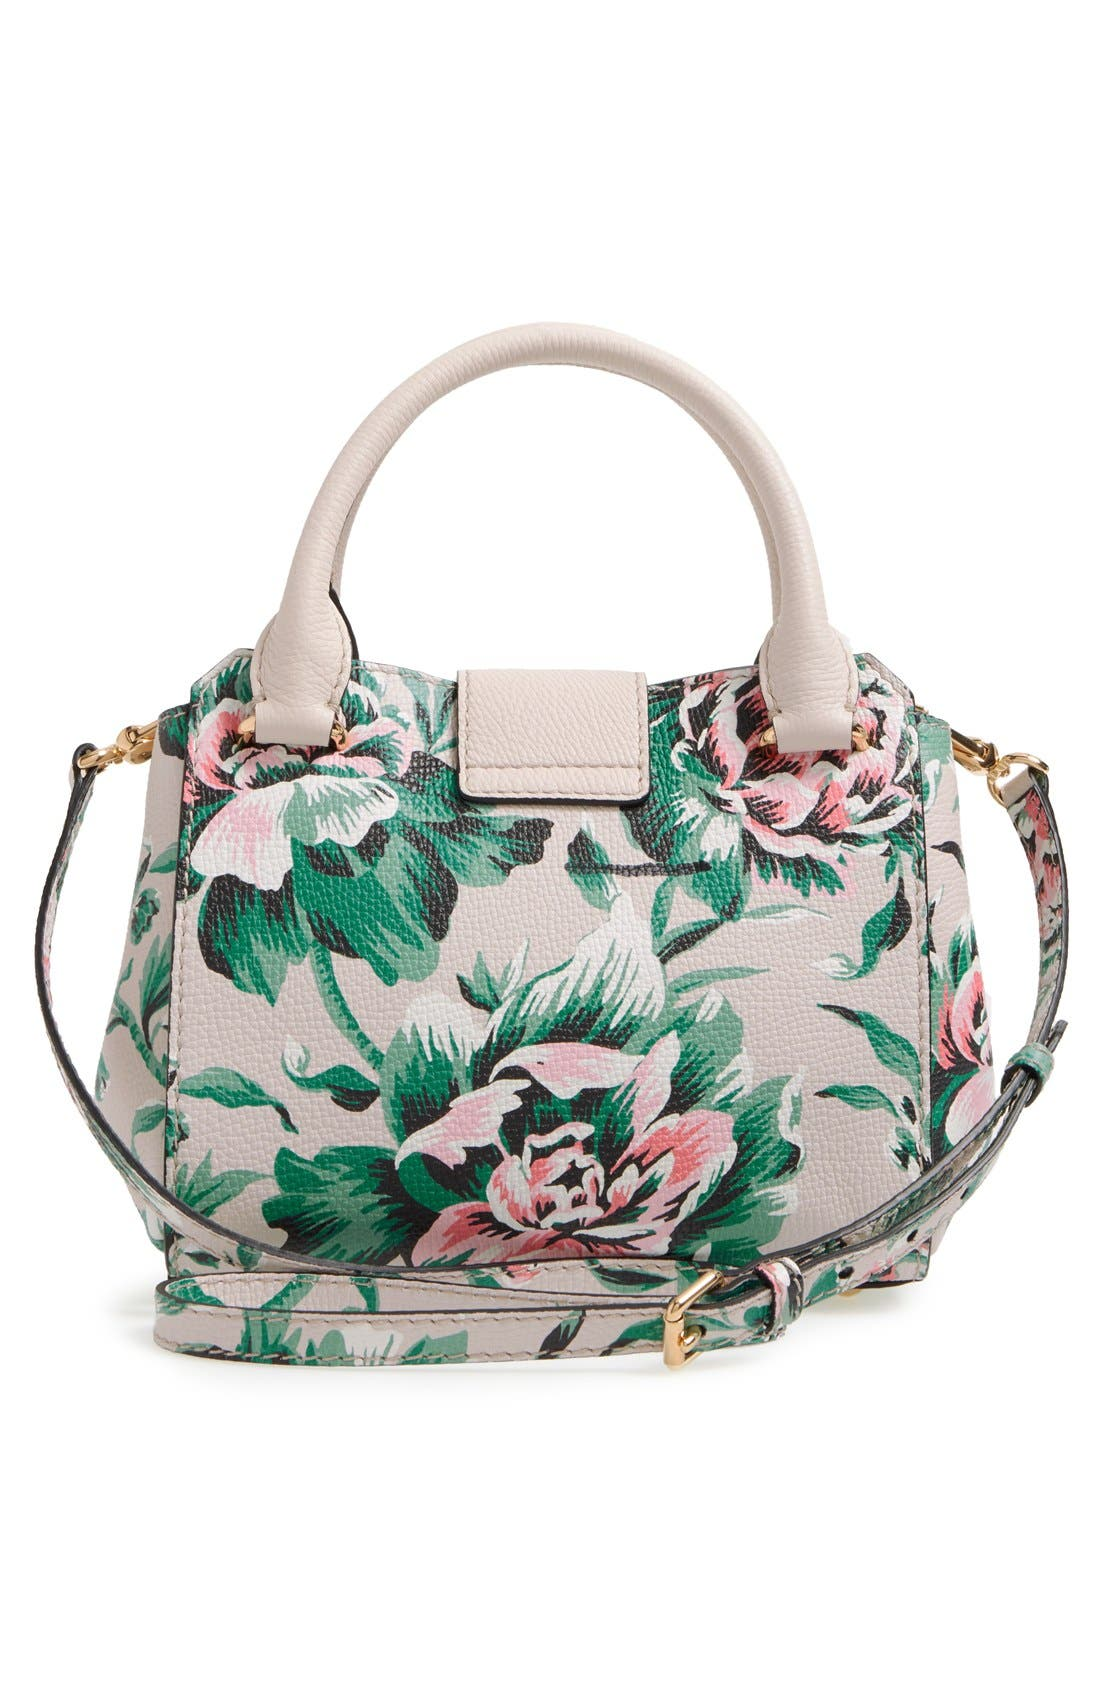 Small Buckle Floral Calfskin Leather Satchel,                             Alternate thumbnail 3, color,                             Emerald Green